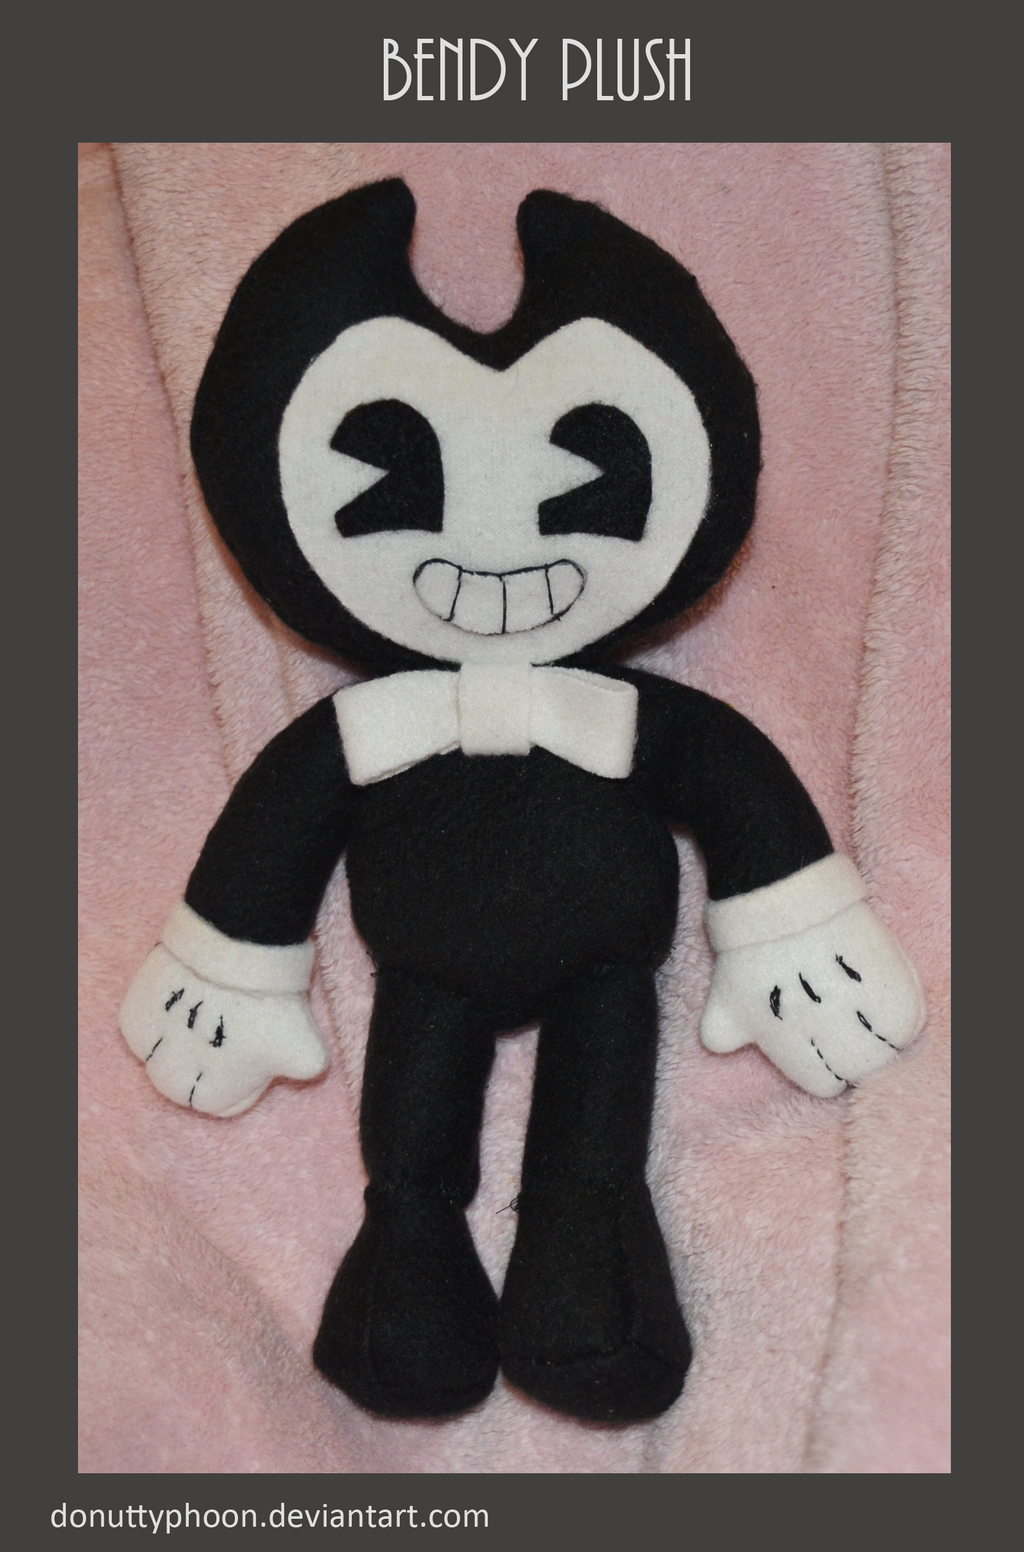 Bendy Plush by DonutTyphoon on DeviantArt